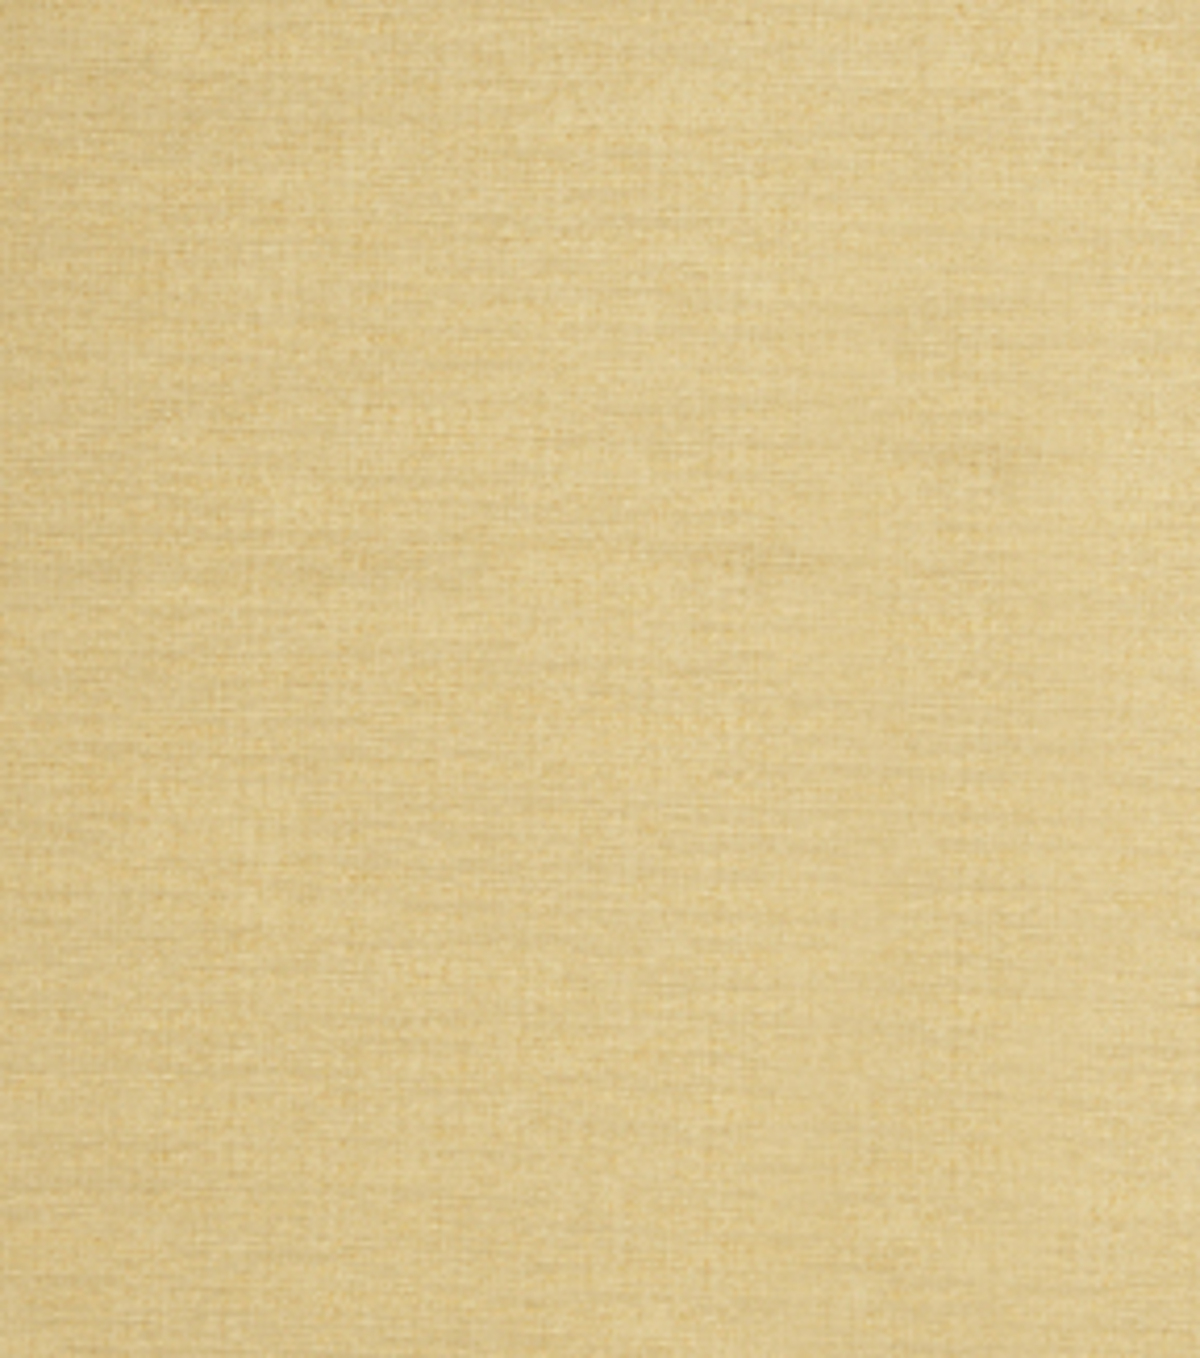 Home Decor 8\u0022x8\u0022 Fabric Swatch-Signature Series Texture Sunflower